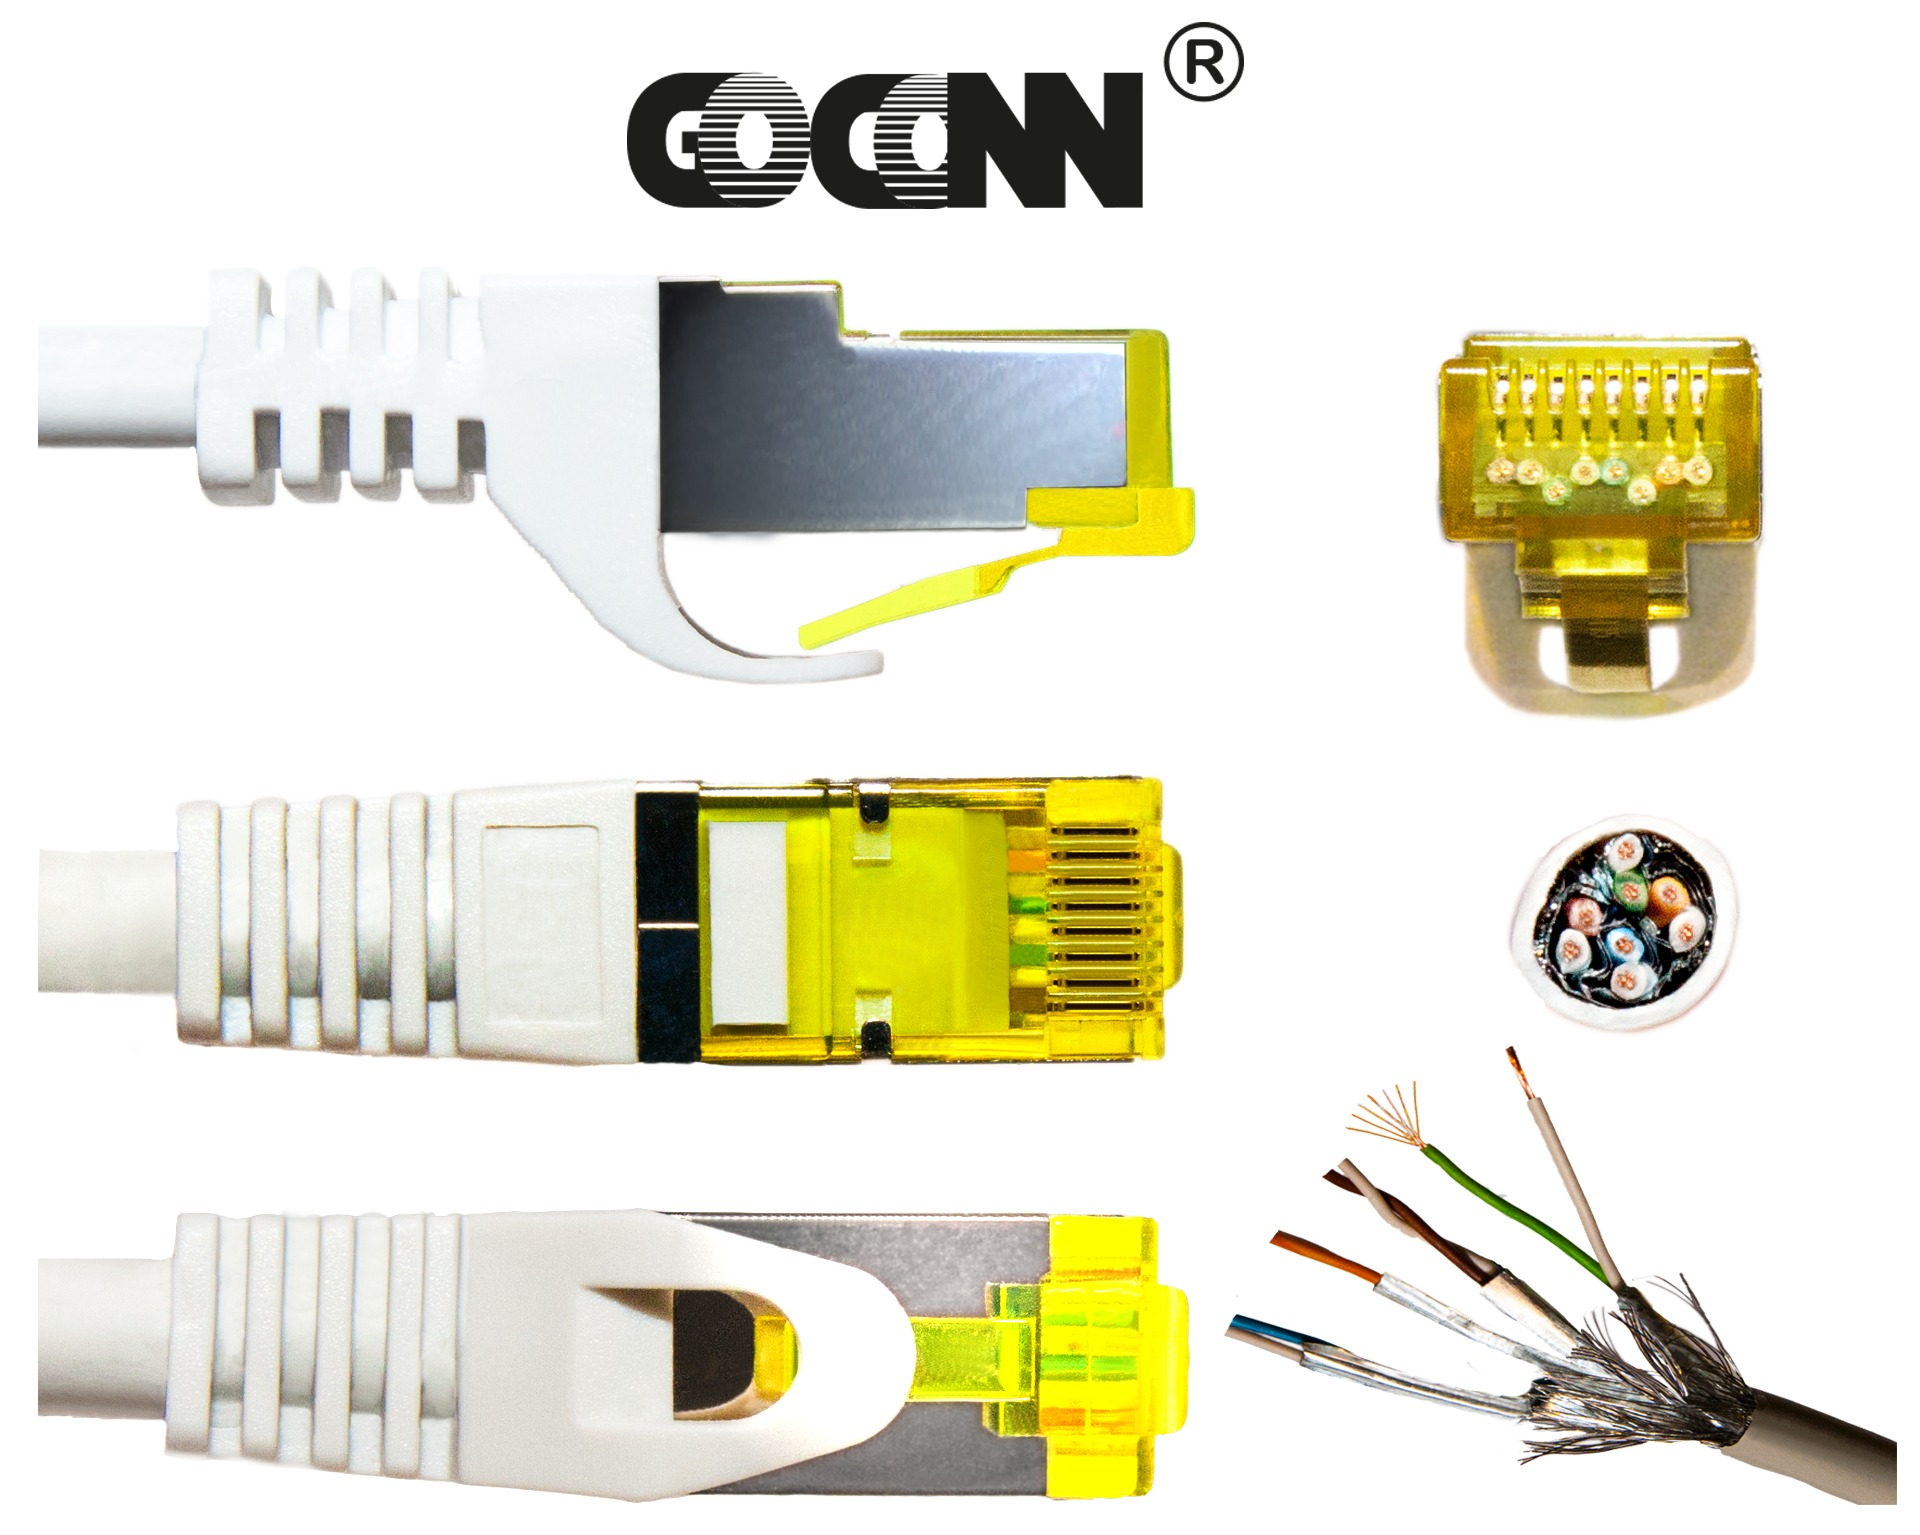 GoConn Patchkabel mit Cat7 Rohkabel 1m orange S/FTP PiMF 500MHz 2xgeschirmt